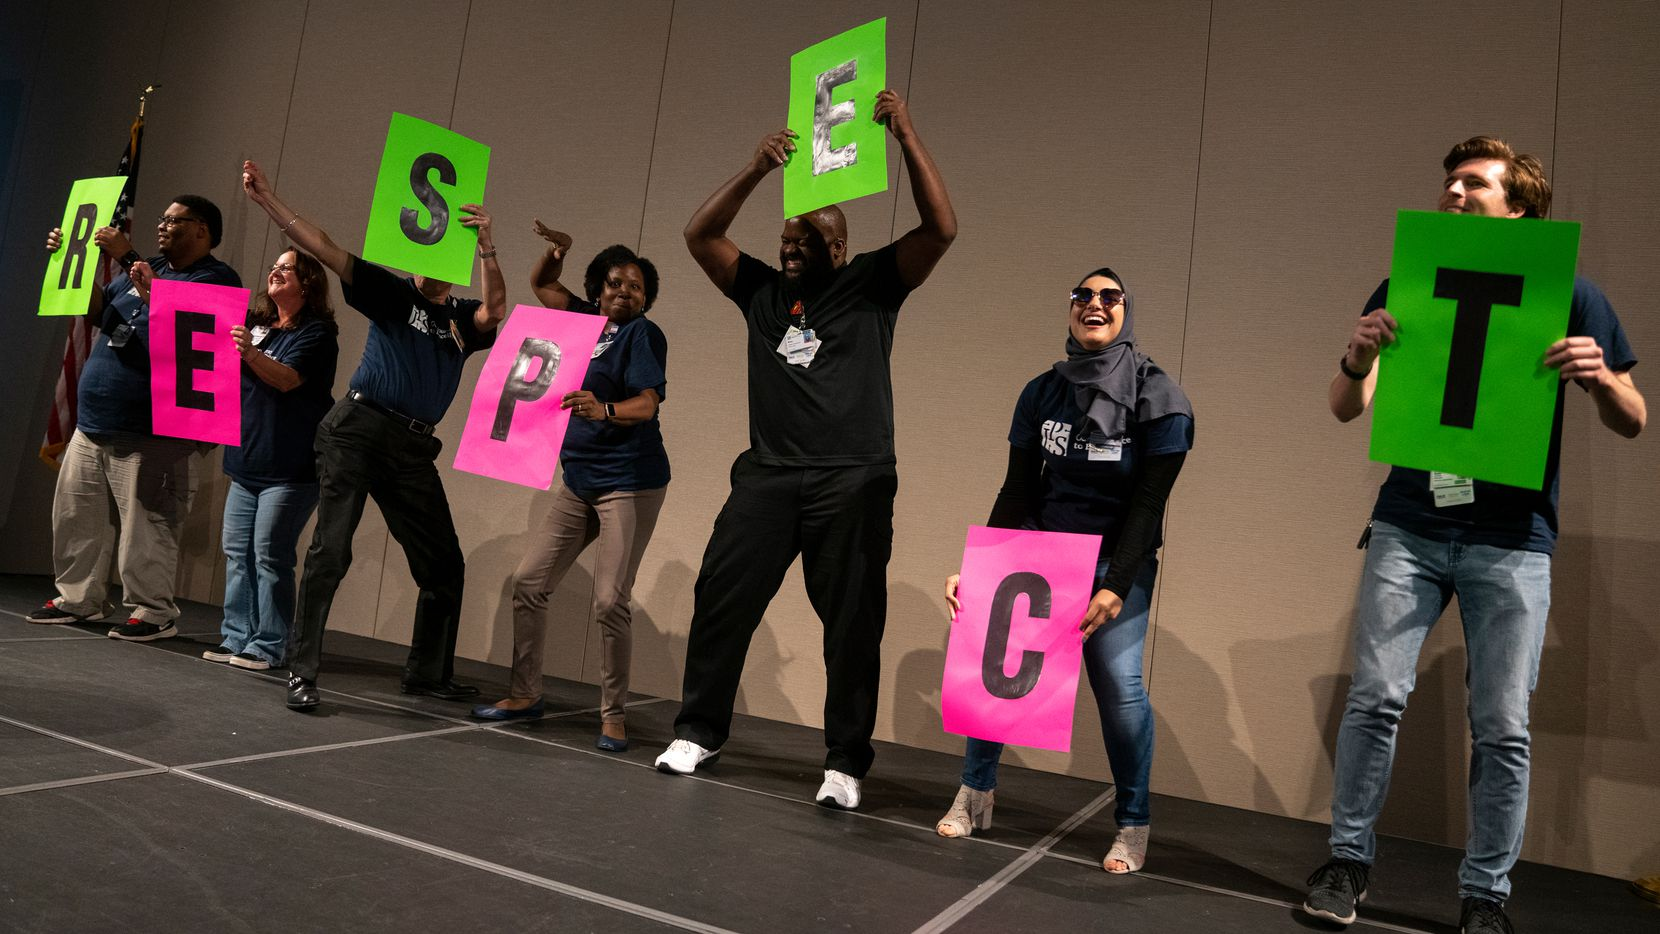 At JPS Health Network's Ambassador Development Institute, workers are nominated as JPS ambassadors help communicate messages throughout the year. At this Ambassador gathering, which focused on diversity in the workplace, ambassadors were asked to perform a skit on the topic.